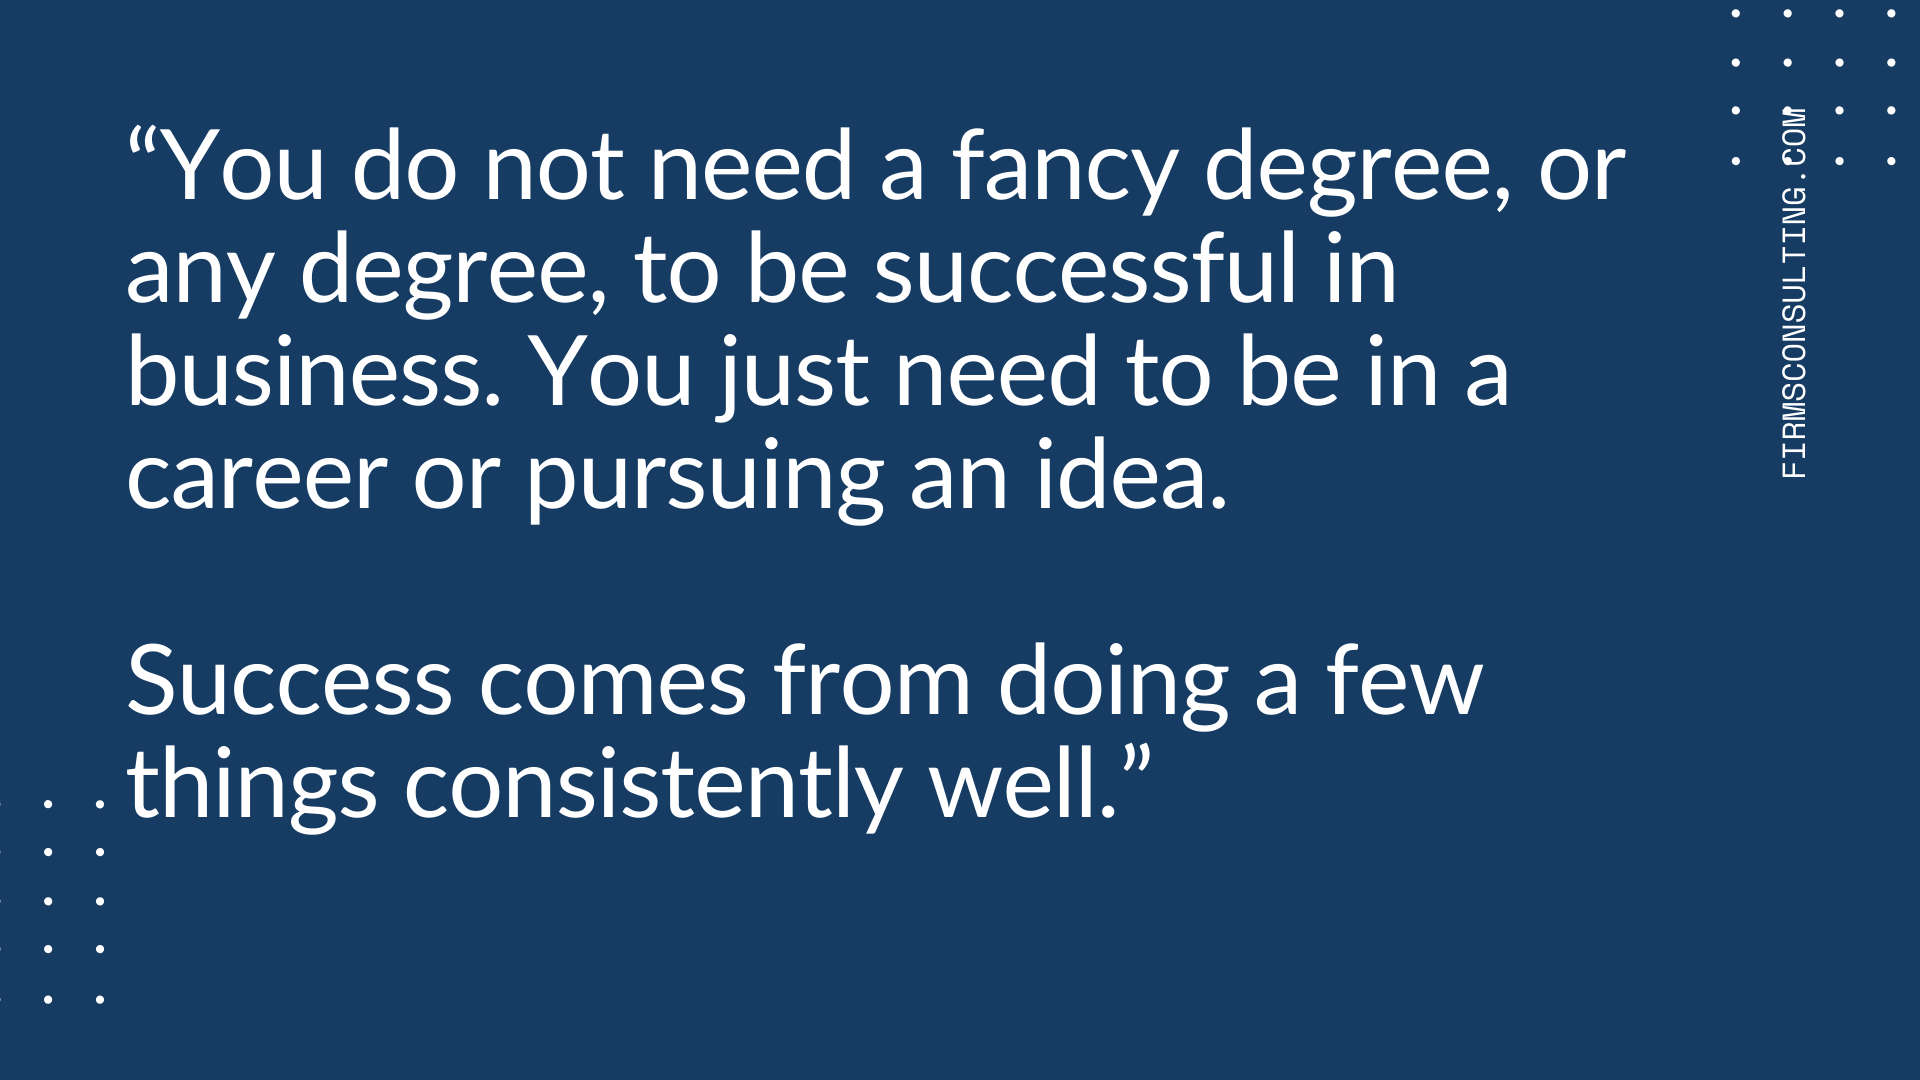 how to manage a recession. you do not need a degree